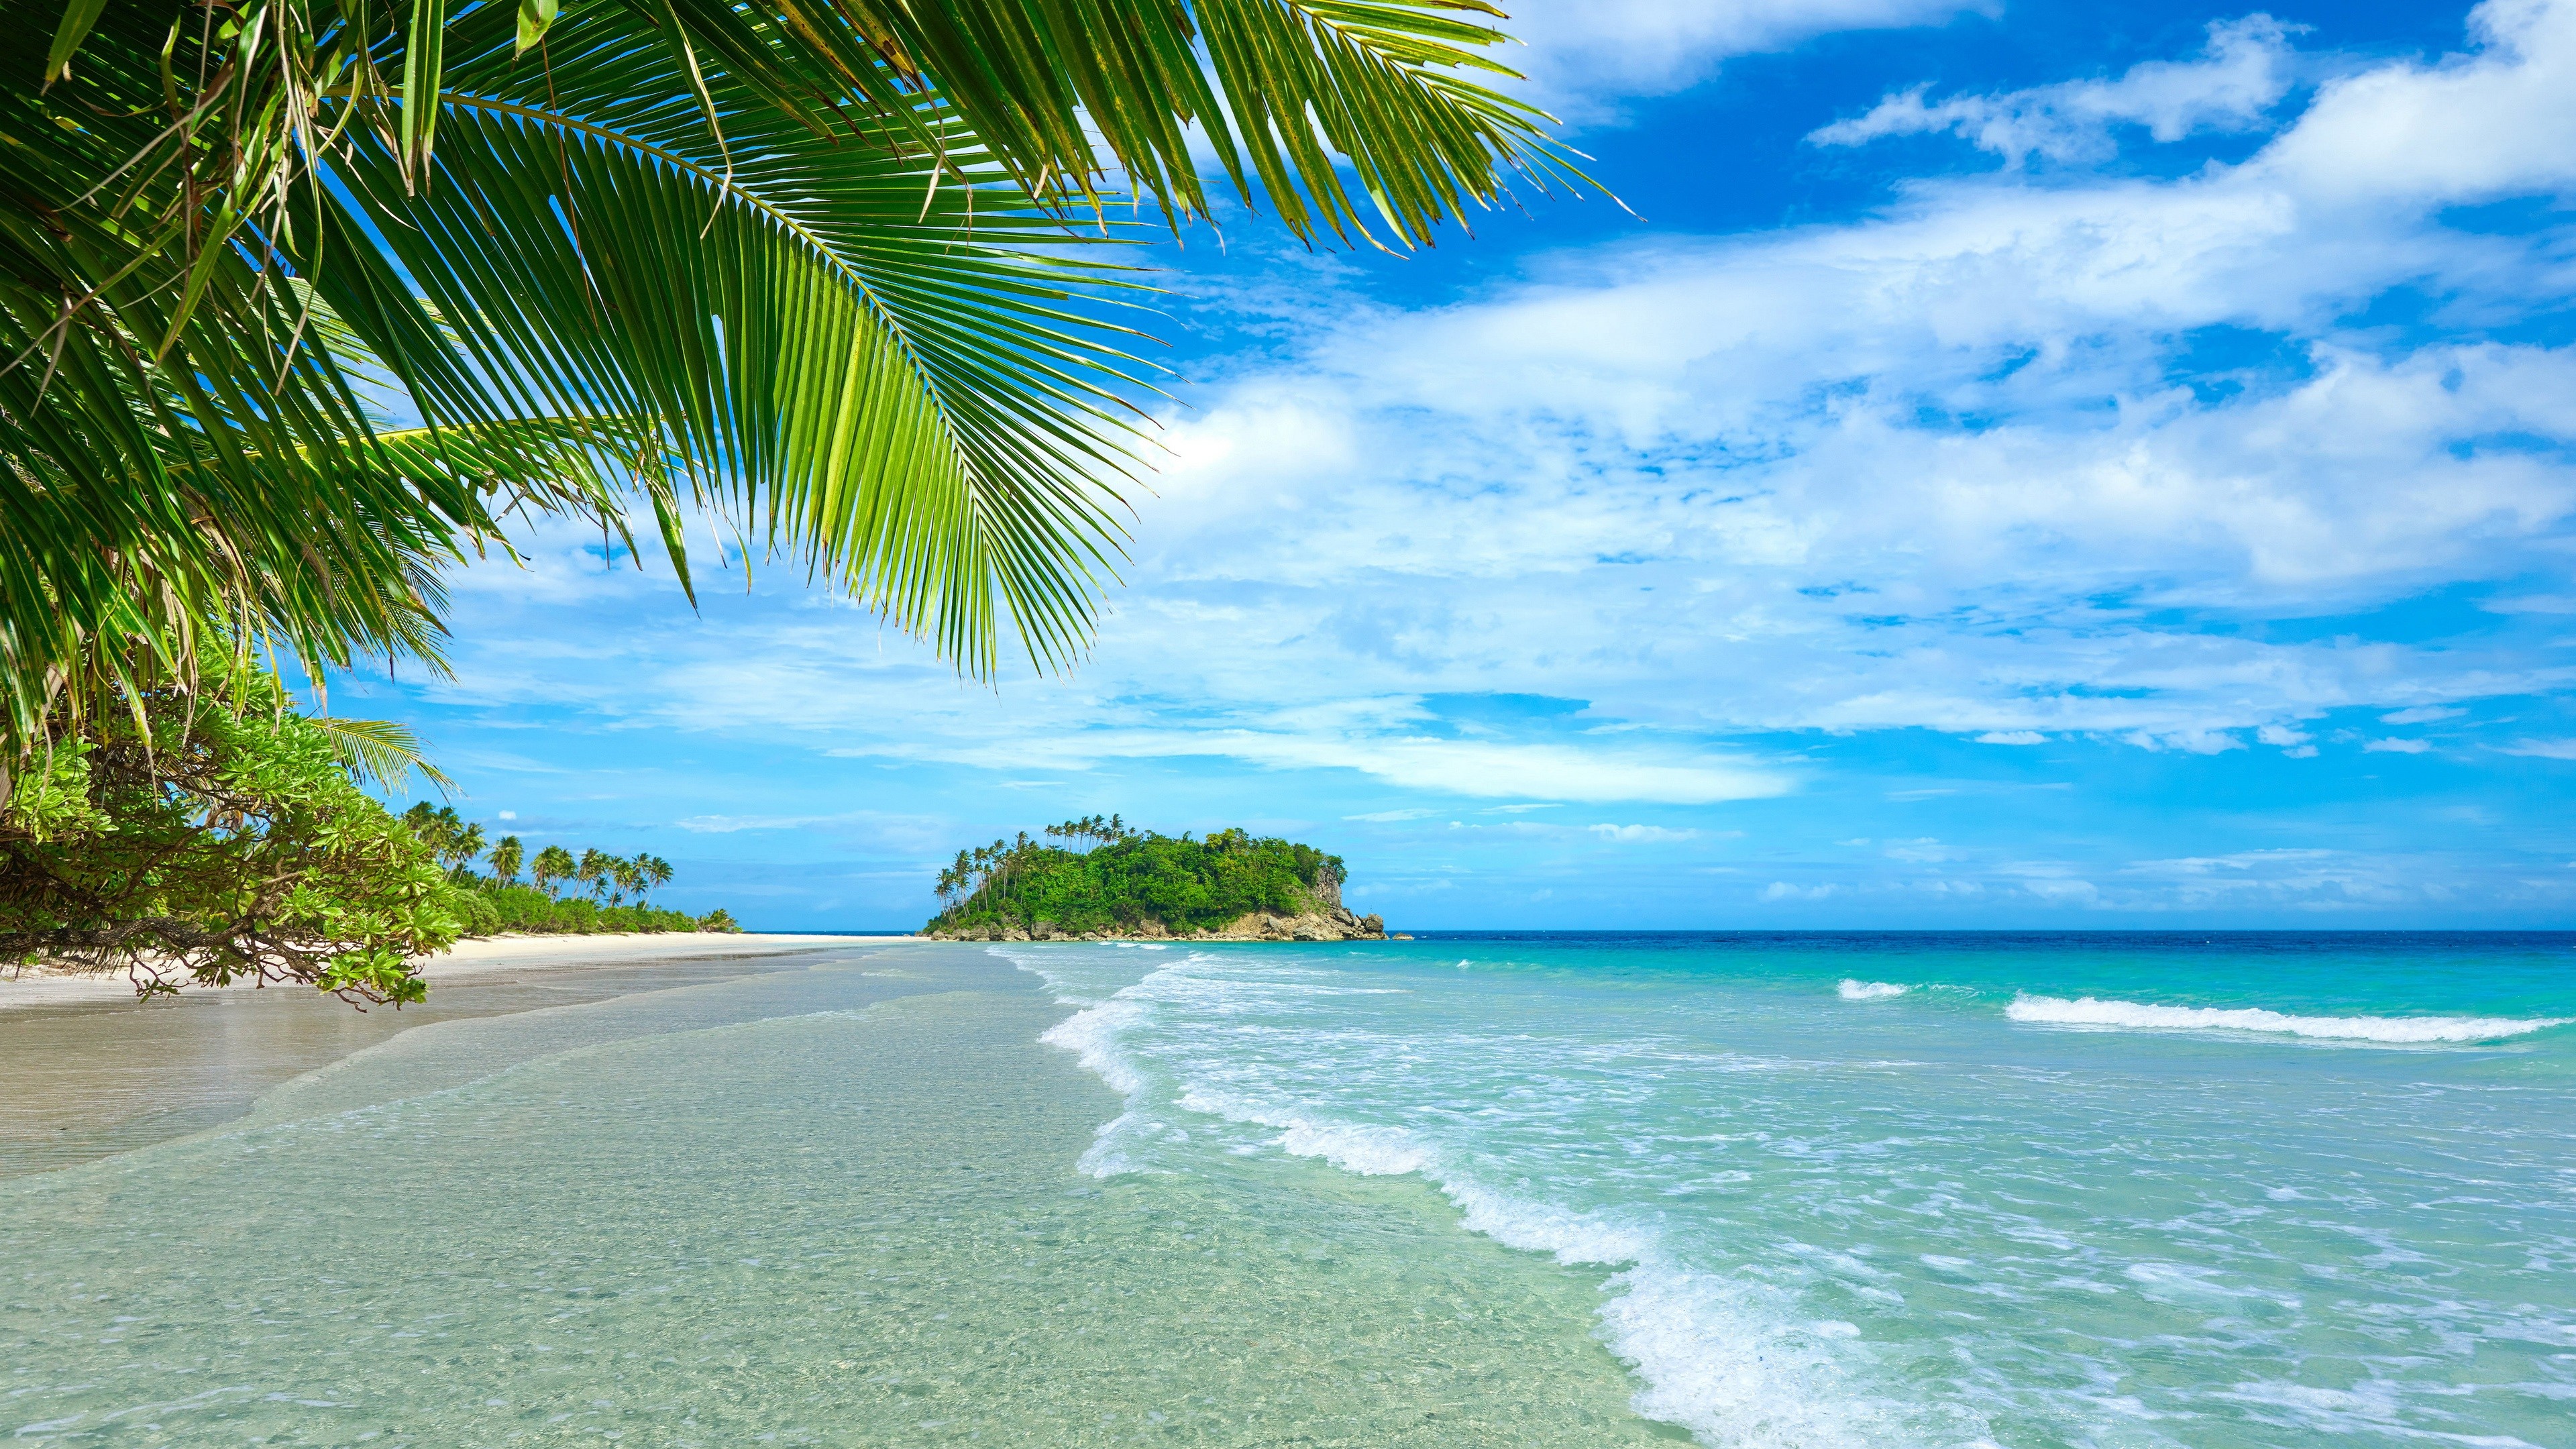 Awesome Tropical Beach 4k Hd Desktop Wallpaper For 4k: 4K Palm Trees Wallpapers High Quality